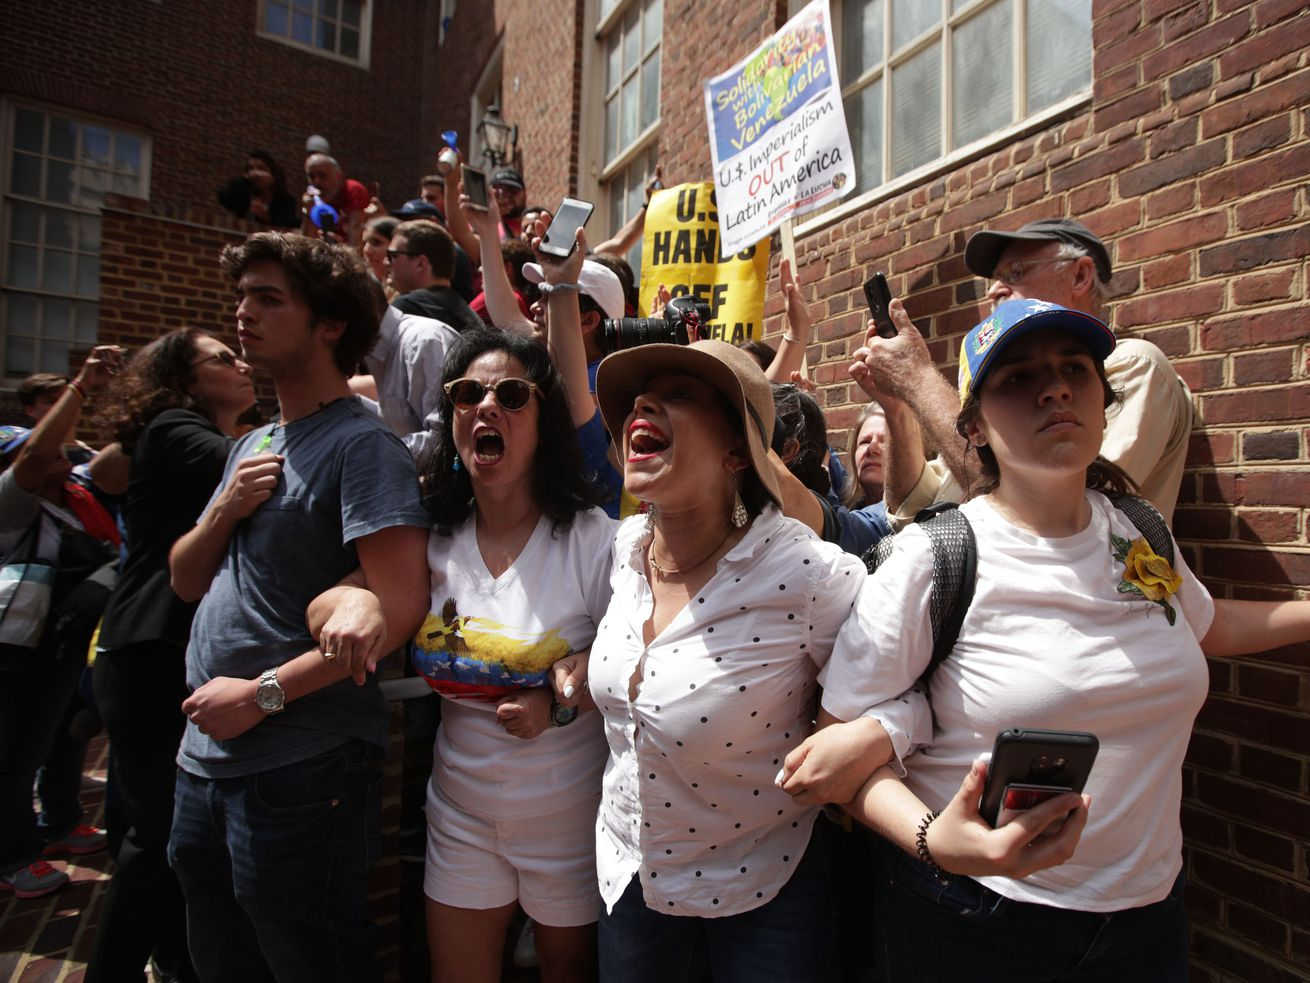 Supporters of Venezuelan opposition leader Juan Guaido block a back entrance of the Embassy of Venezuela on May 2, 2019 in Washington, DC.